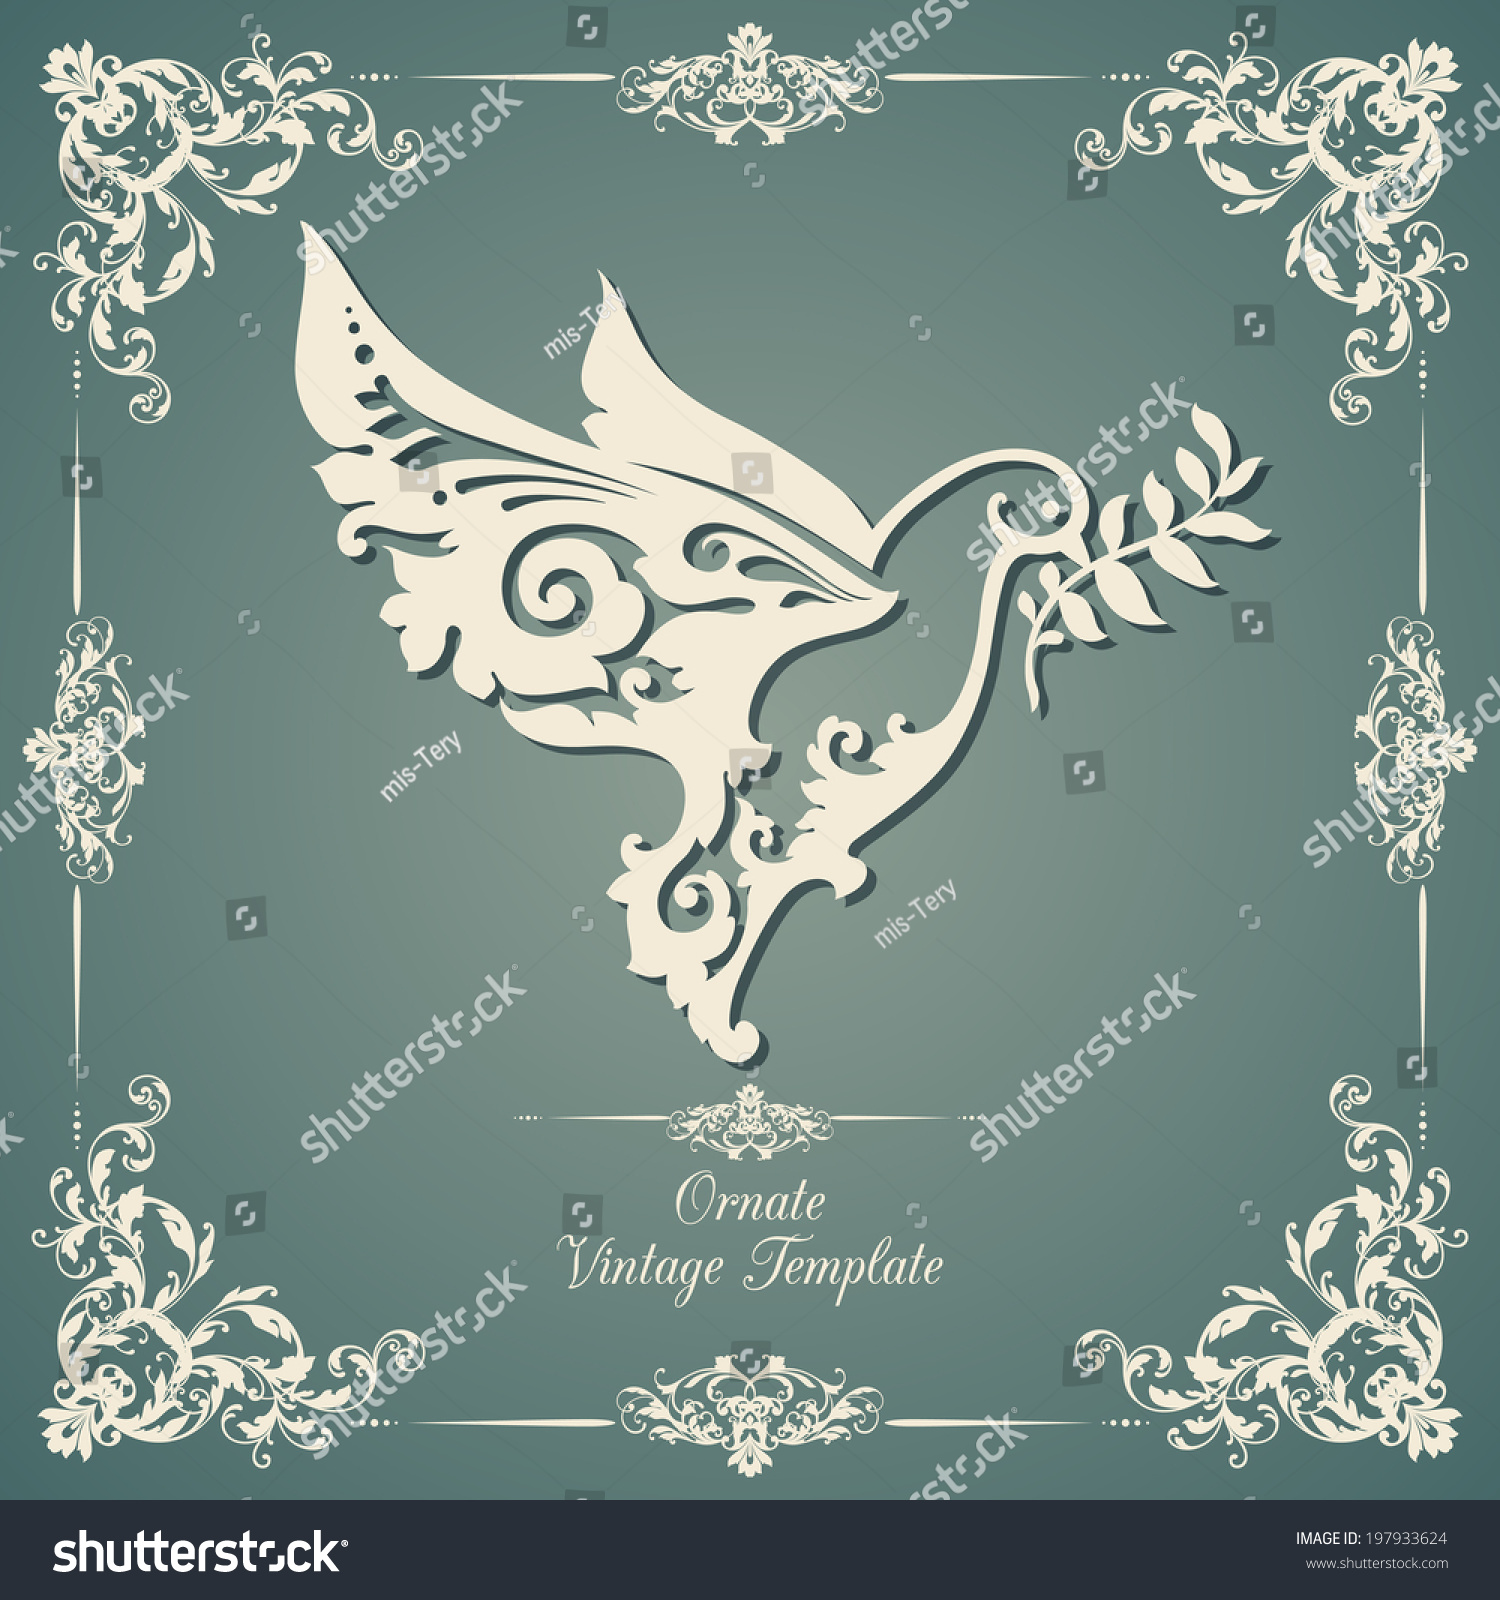 Vintage Template Ornamental Dove Olive Branch Stock Vector 197933624 ...